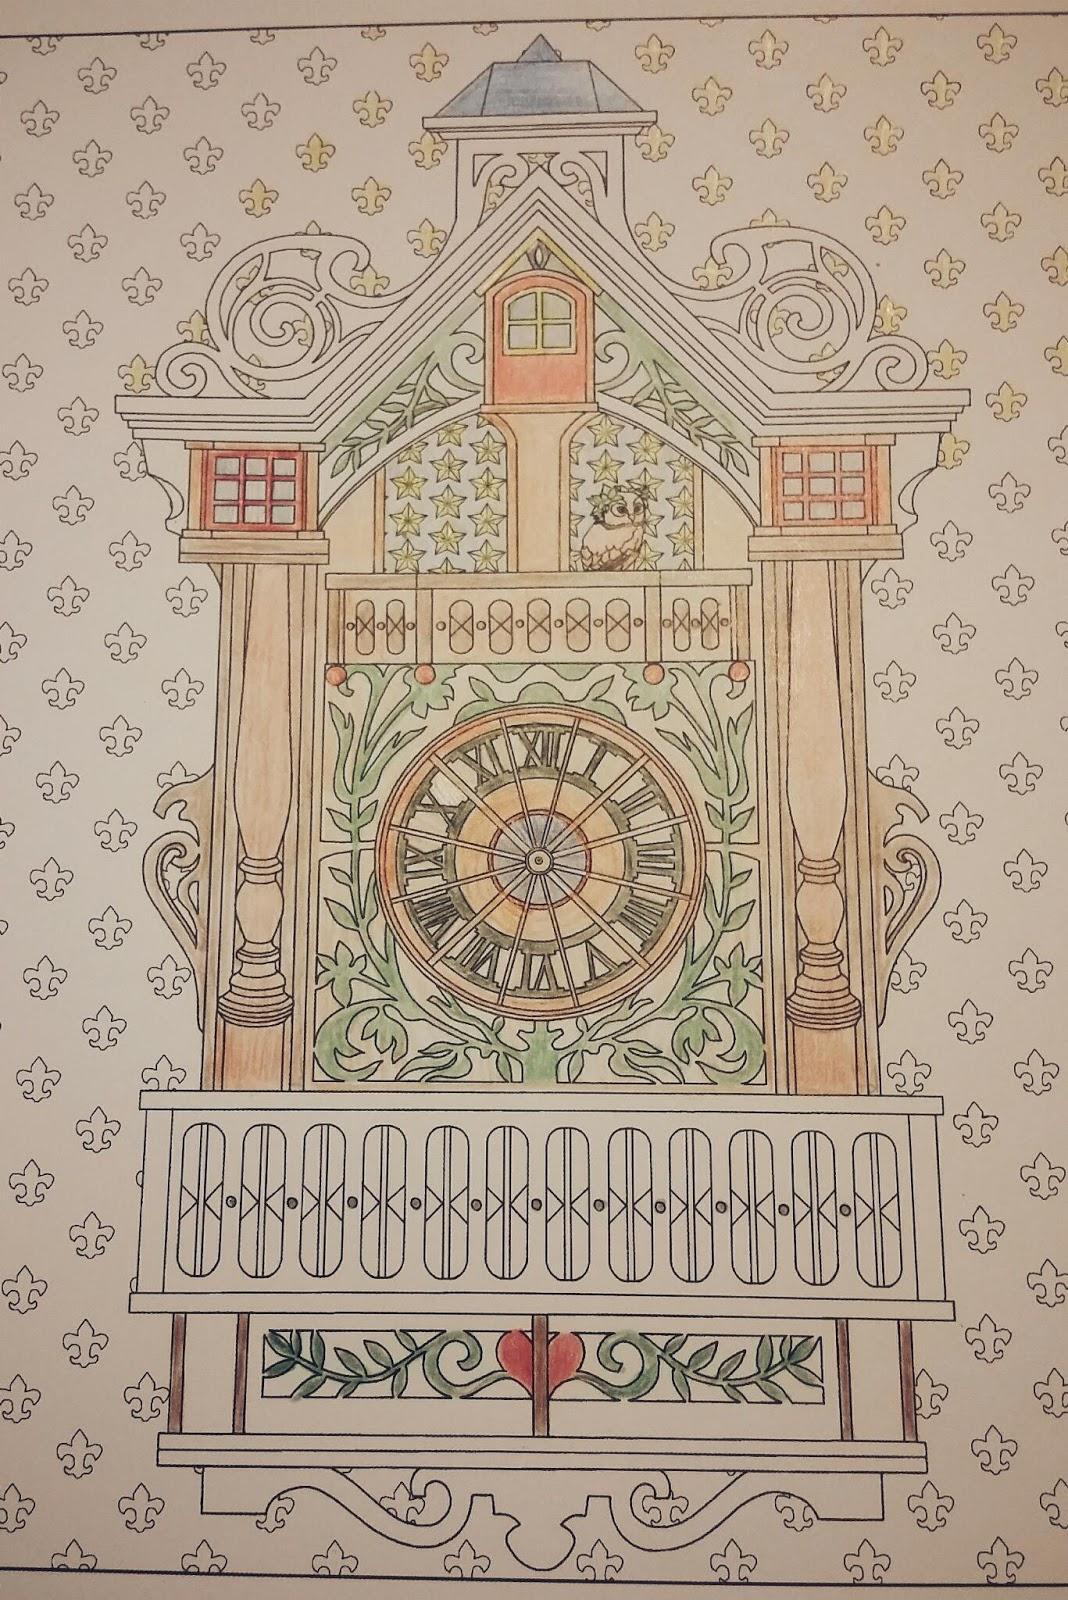 Adult Coloring Book For Relaxation The Time Garden By